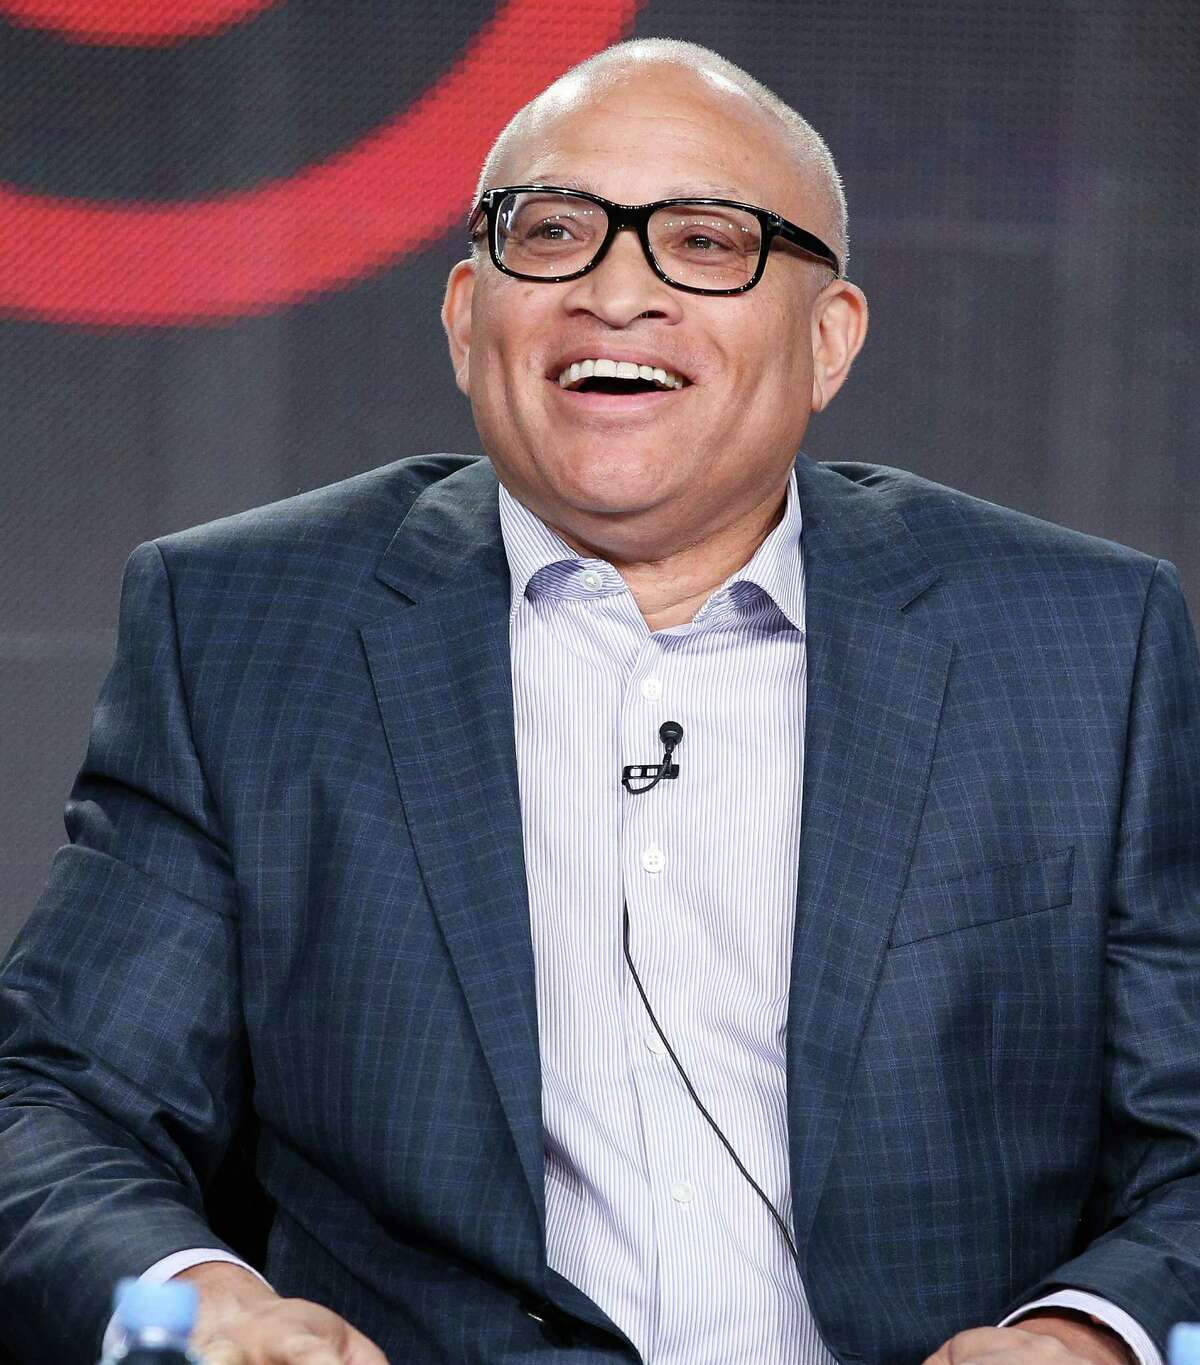 PASADENA, CA - JANUARY 10: Host Larry Wilmore speaks onstage during the Viacom Winter Television Critics Association (TCA) press tour at The Langham Huntington Hotel and Spa on January 10, 2015 in Pasadena, California. (Photo by Imeh Akpanudosen/Getty Images for Viacom)